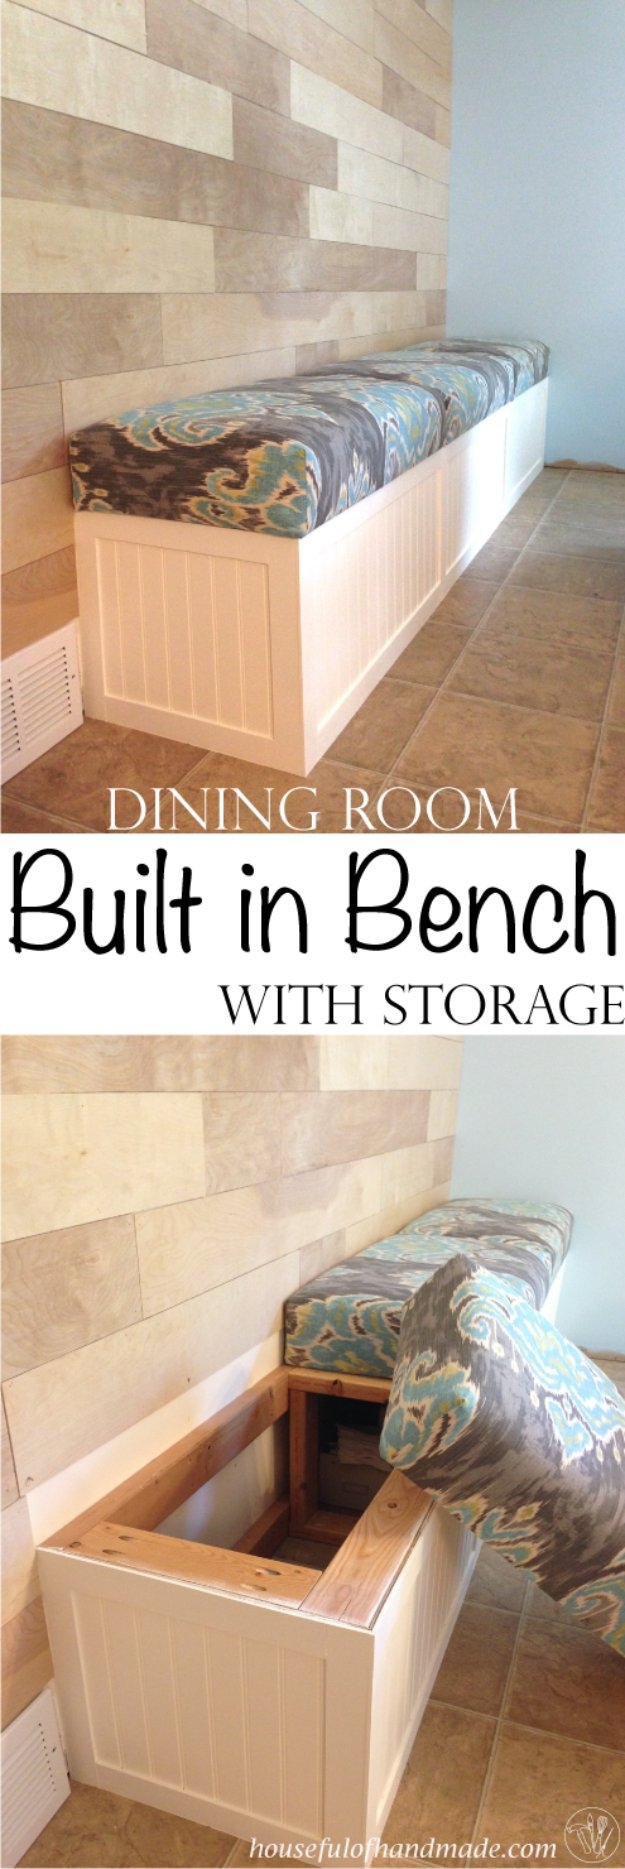 DIY Dining Room Decor Ideas - Dining Room Built In Bench With Storage - Cool DIY Projects for Table, Chairs, Decorations, Wall Art, Bench Plans, Storage, Buffet, Hutch and Lighting Tutorials